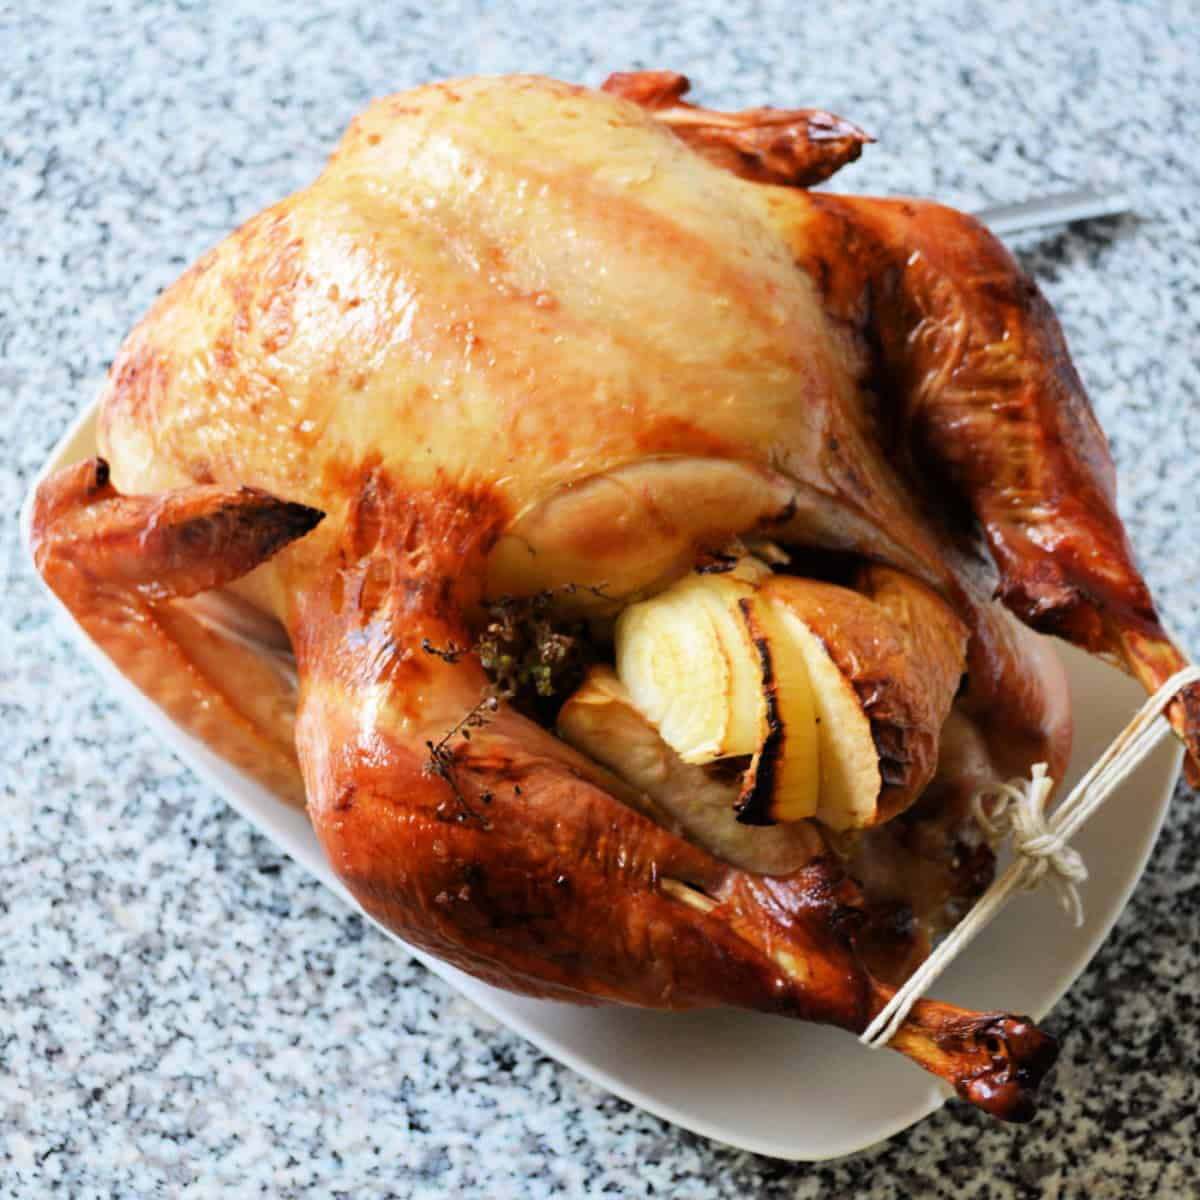 Roasted turkey stuffed with fruit and vegetables in a white serving dish.